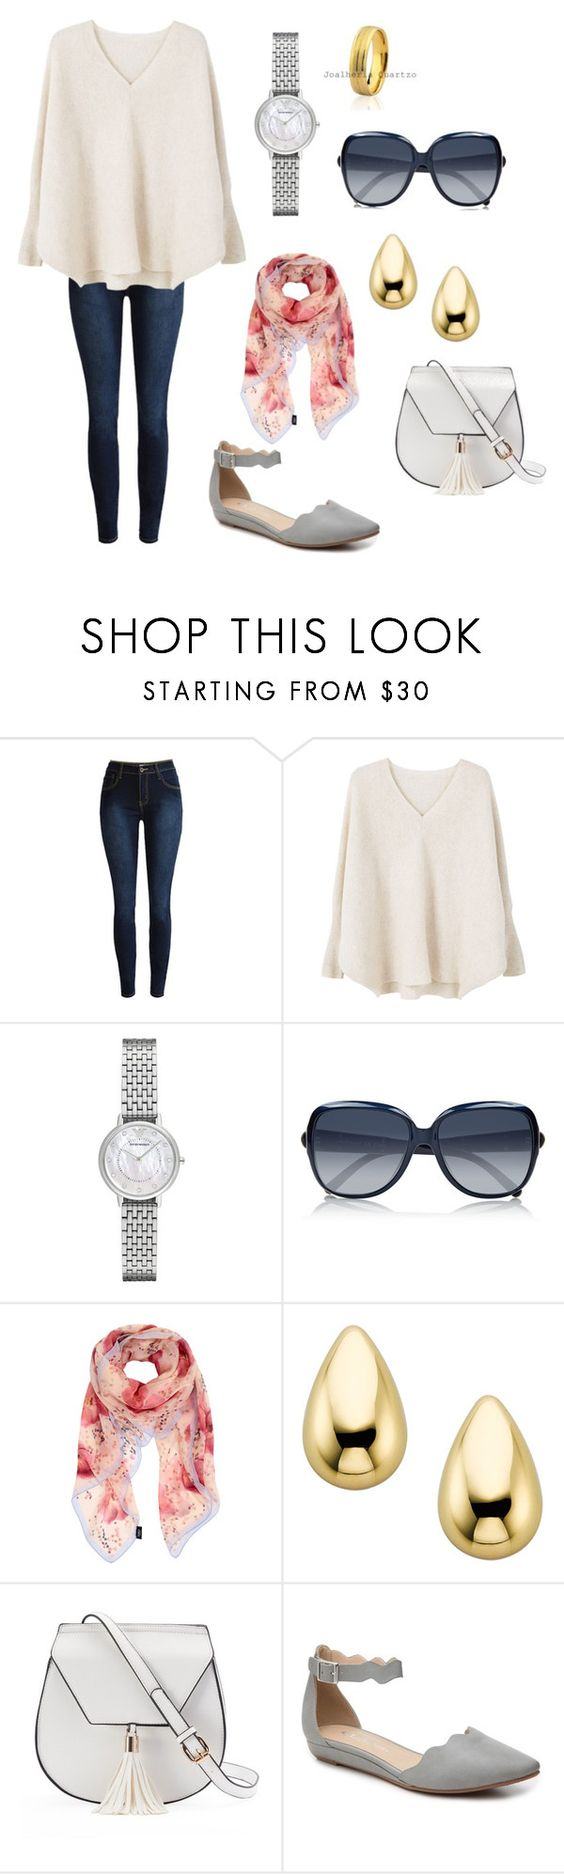 """""""watching a football game in Adelaide"""" by dezac-novaes on Polyvore featuring MANGO, Emporio Armani, Chloé, Furla, Yoki and CL by Laundry"""